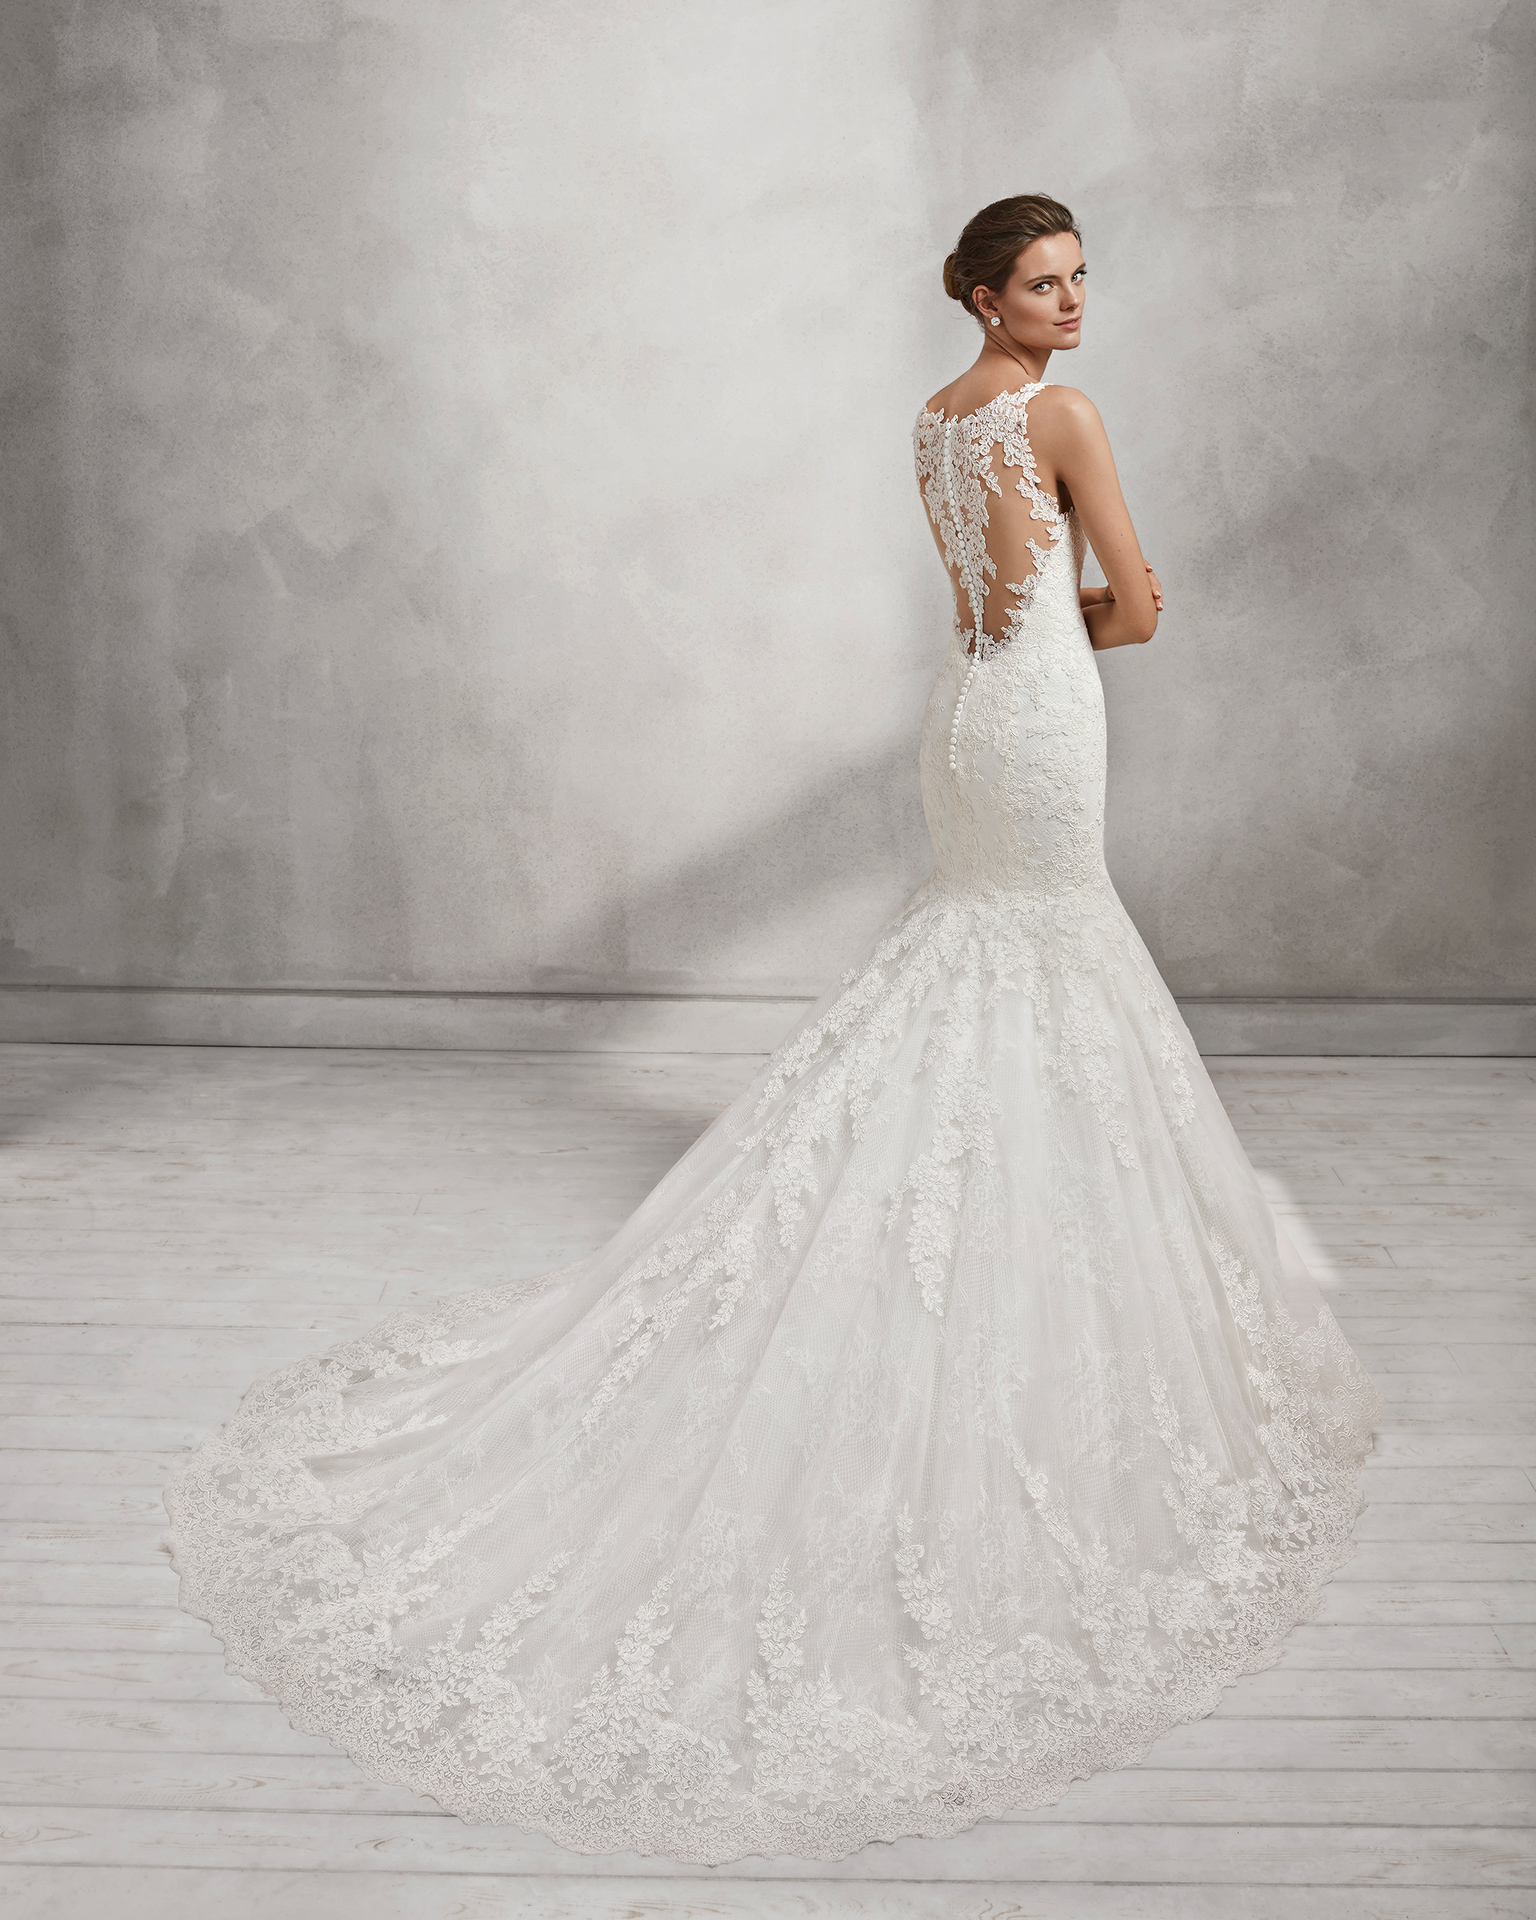 Mermaid-style lace wedding dress with tattoo-effect back.